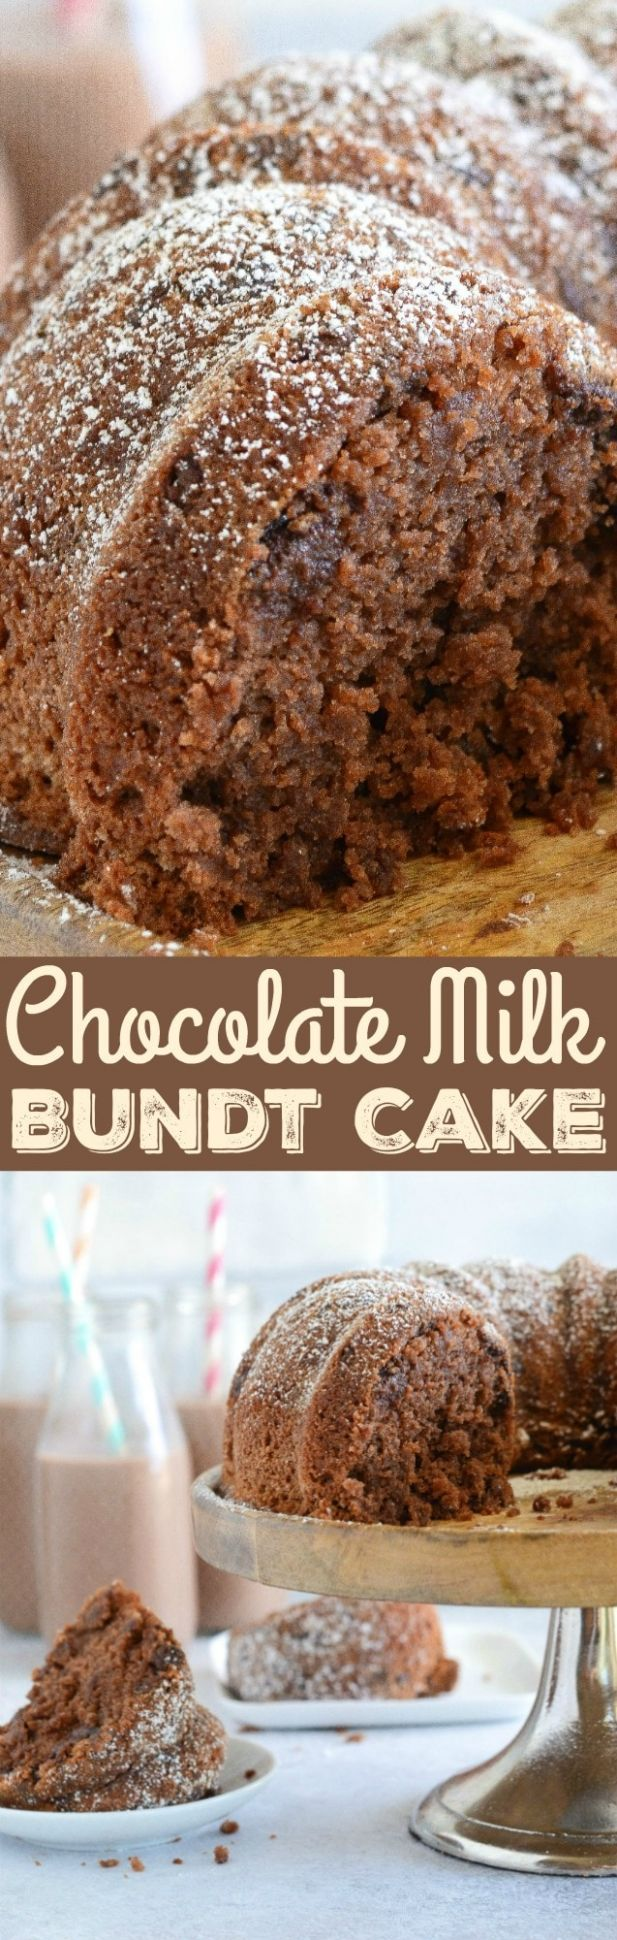 Chocolate Milk Bundt Cake Recipe